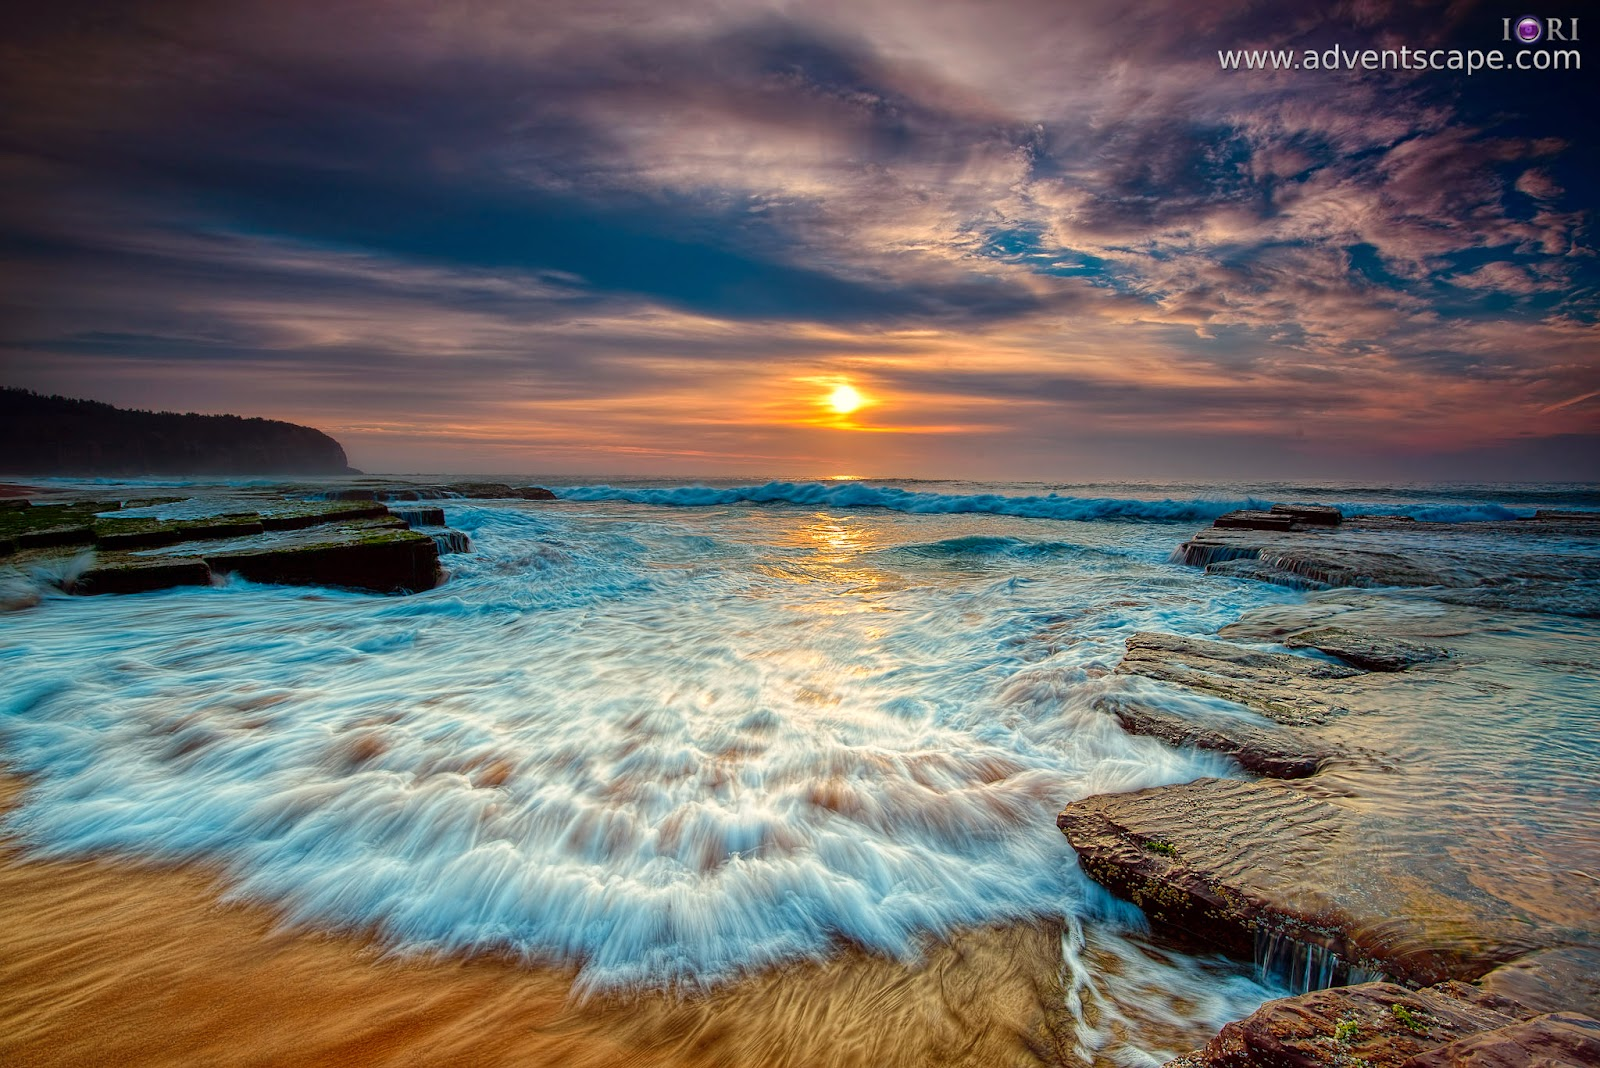 adventscape, Australia, Beach, coastline, dawn, landscape, nature photos, New South Whales, NSW, Philip Avellana, seascape, sunrise, turimetta, water, waves